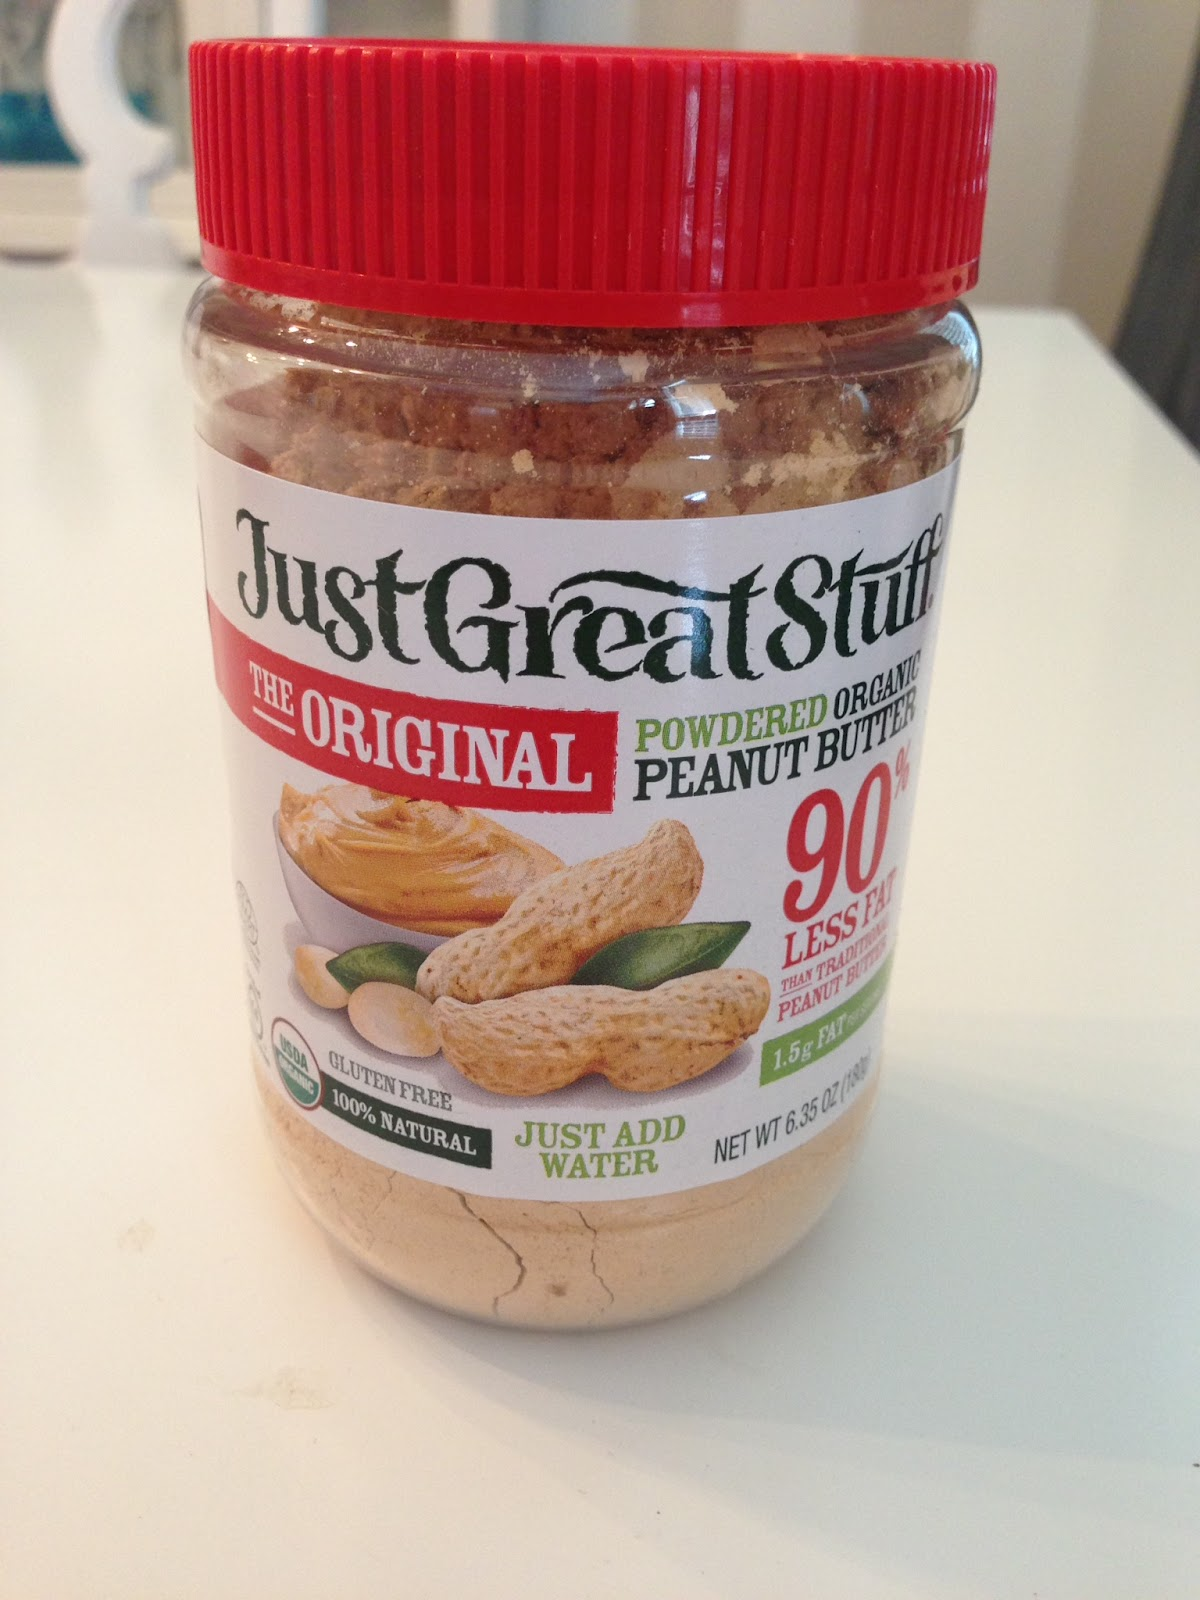 http://www.amazon.com/Betty-Lous-Powdered-Peanut-6-35-Ounce/dp/B006UM6D94/ref=sr_1_1?s=grocery&ie=UTF8&qid=1402518588&sr=1-1&keywords=just+great+stuff+organic+powdered+peanut+butter